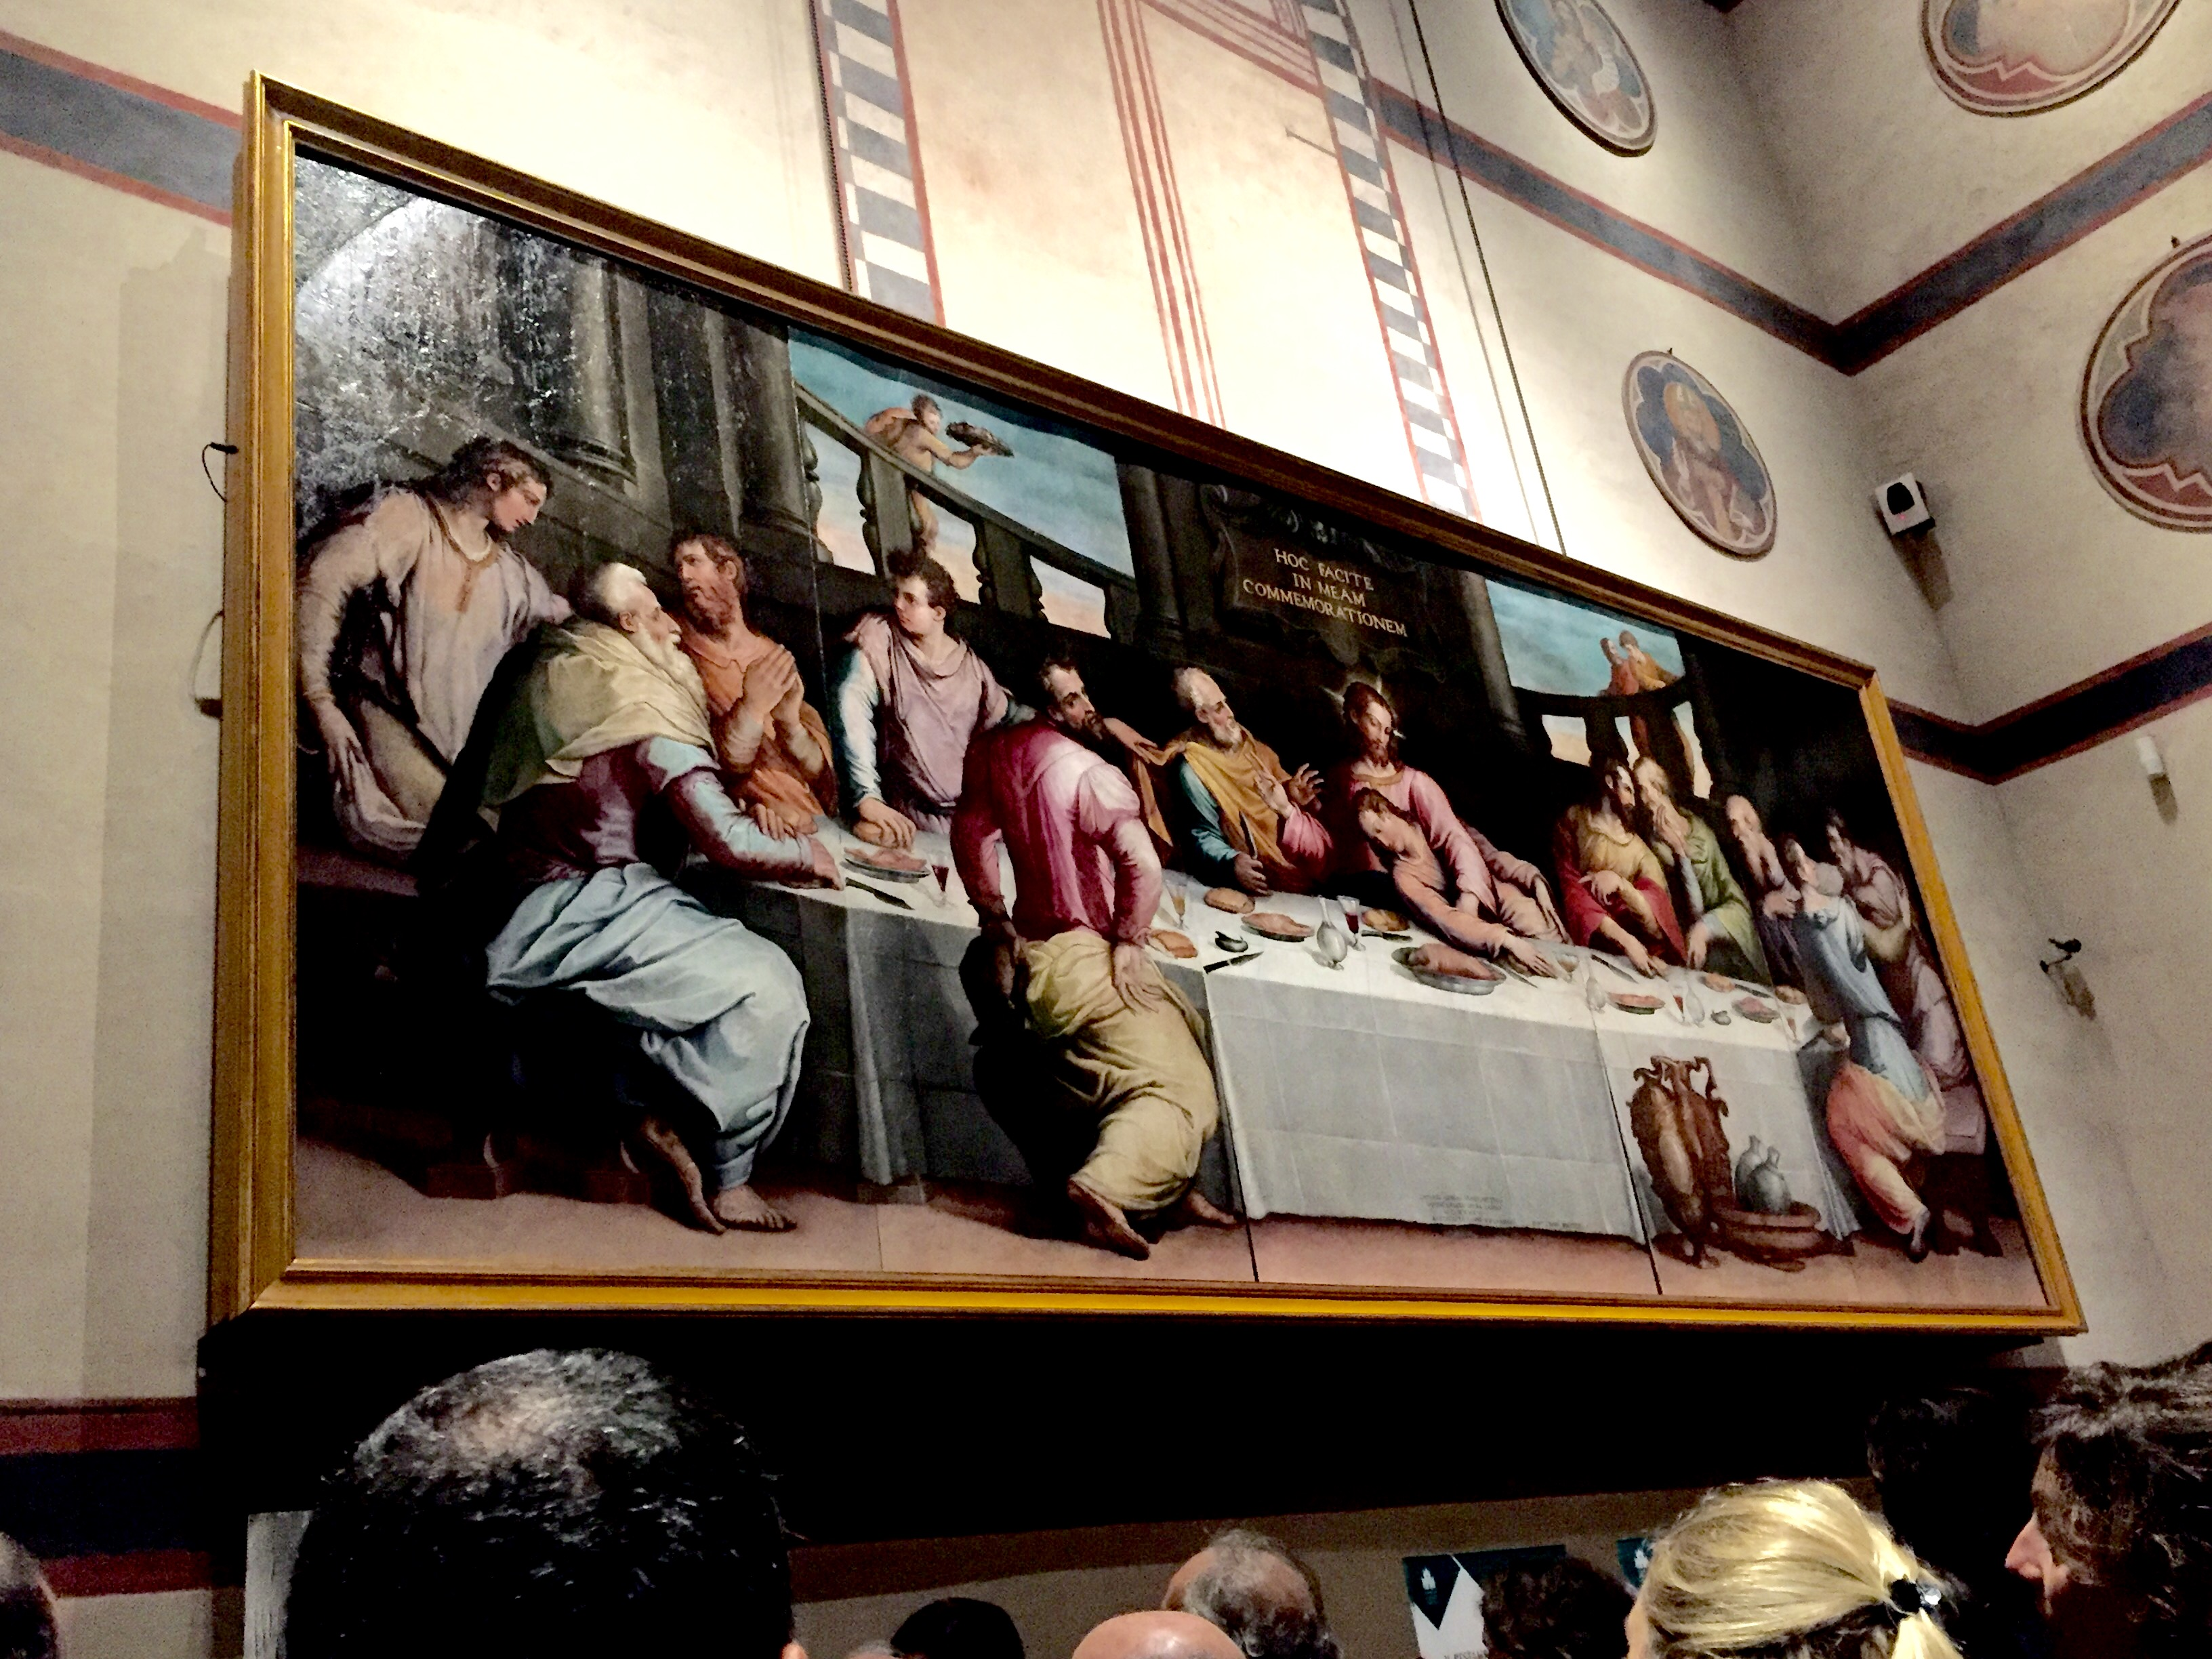 The last supper by Vasari unveiled: one night at the Opera of Santa Croce